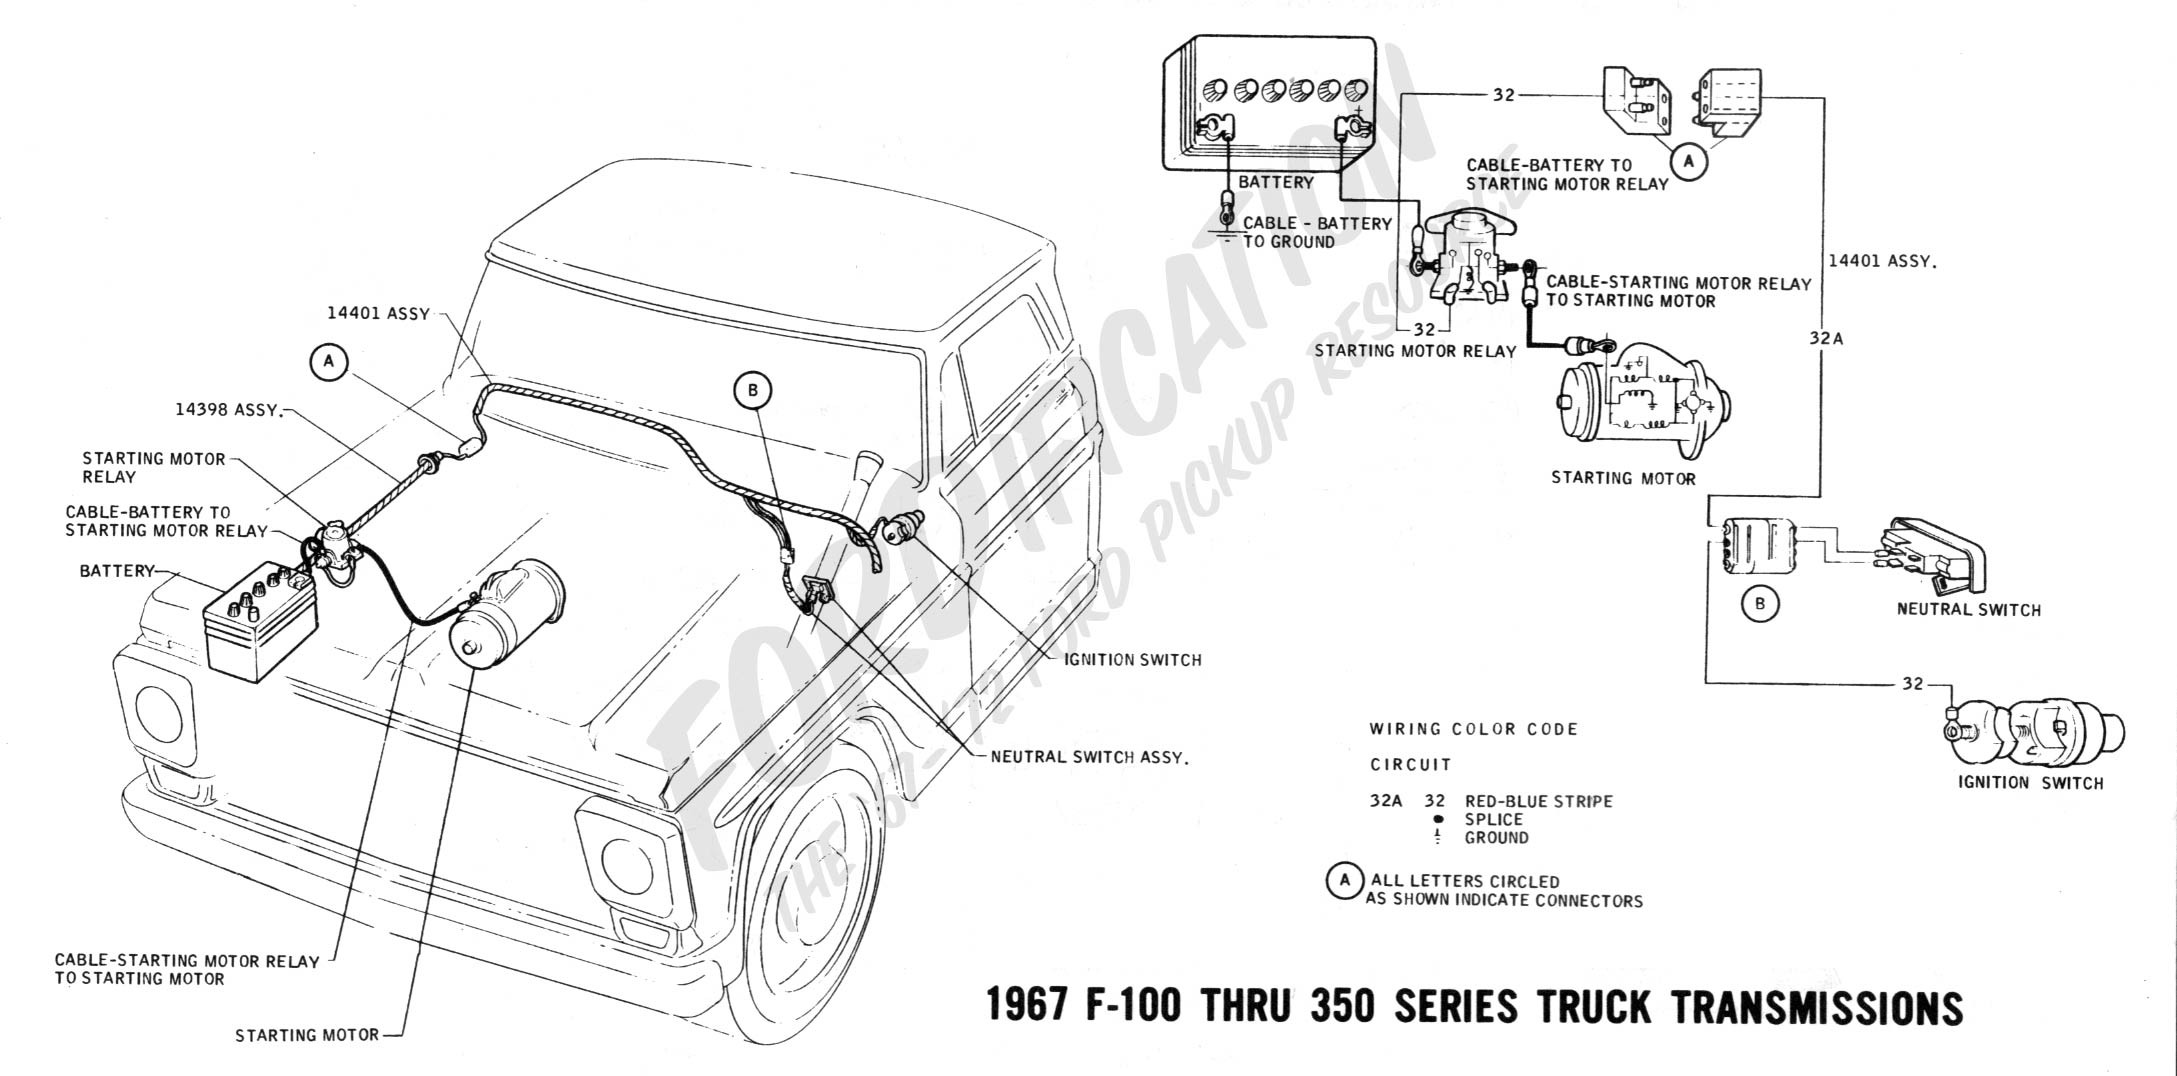 Chevy Truck Wiring Diagram Voltage Regulator Circuit Diagram 1966 Ford